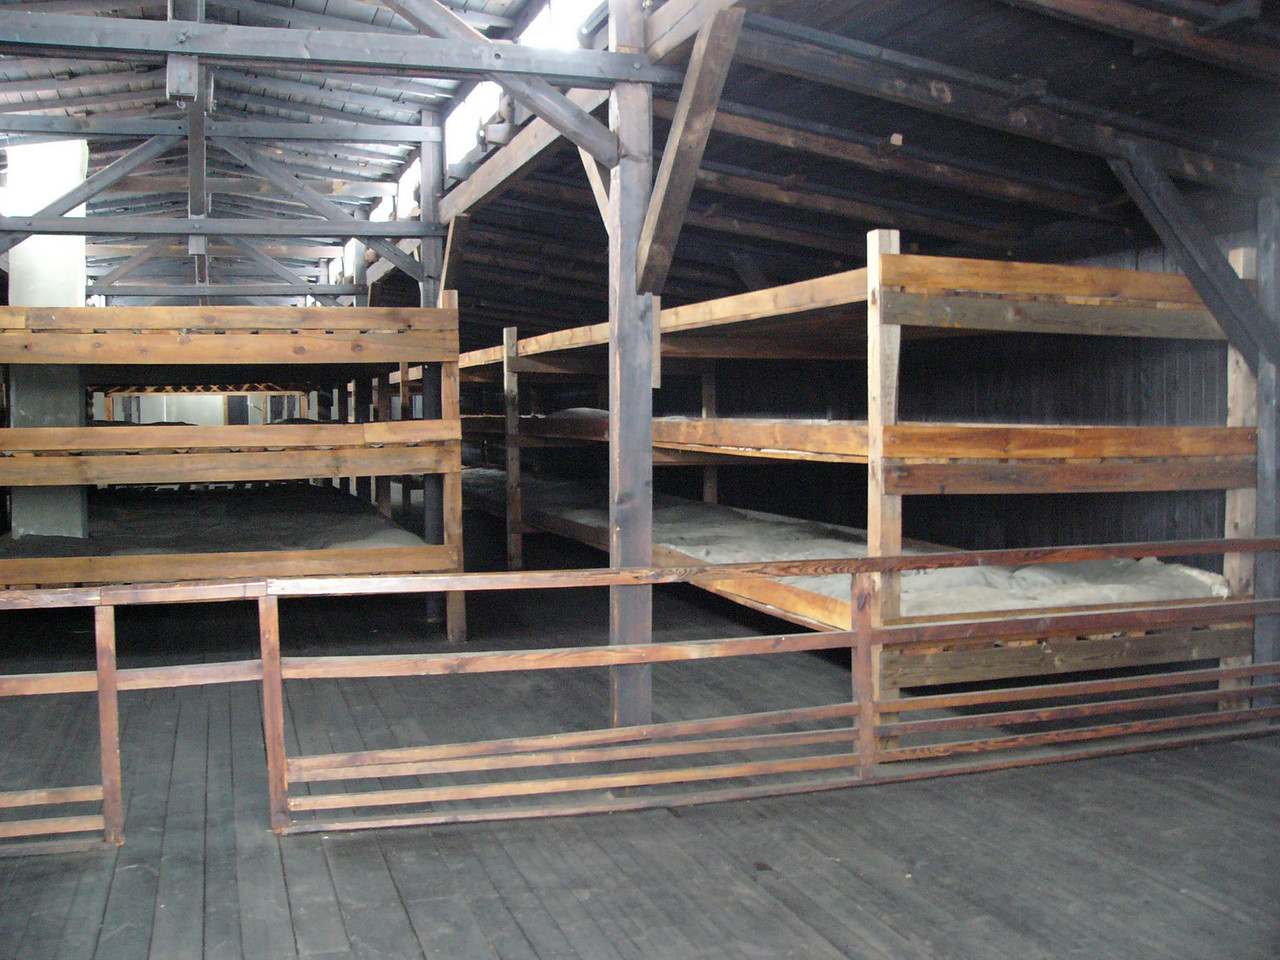 Barrack for prisoners at Majdanek